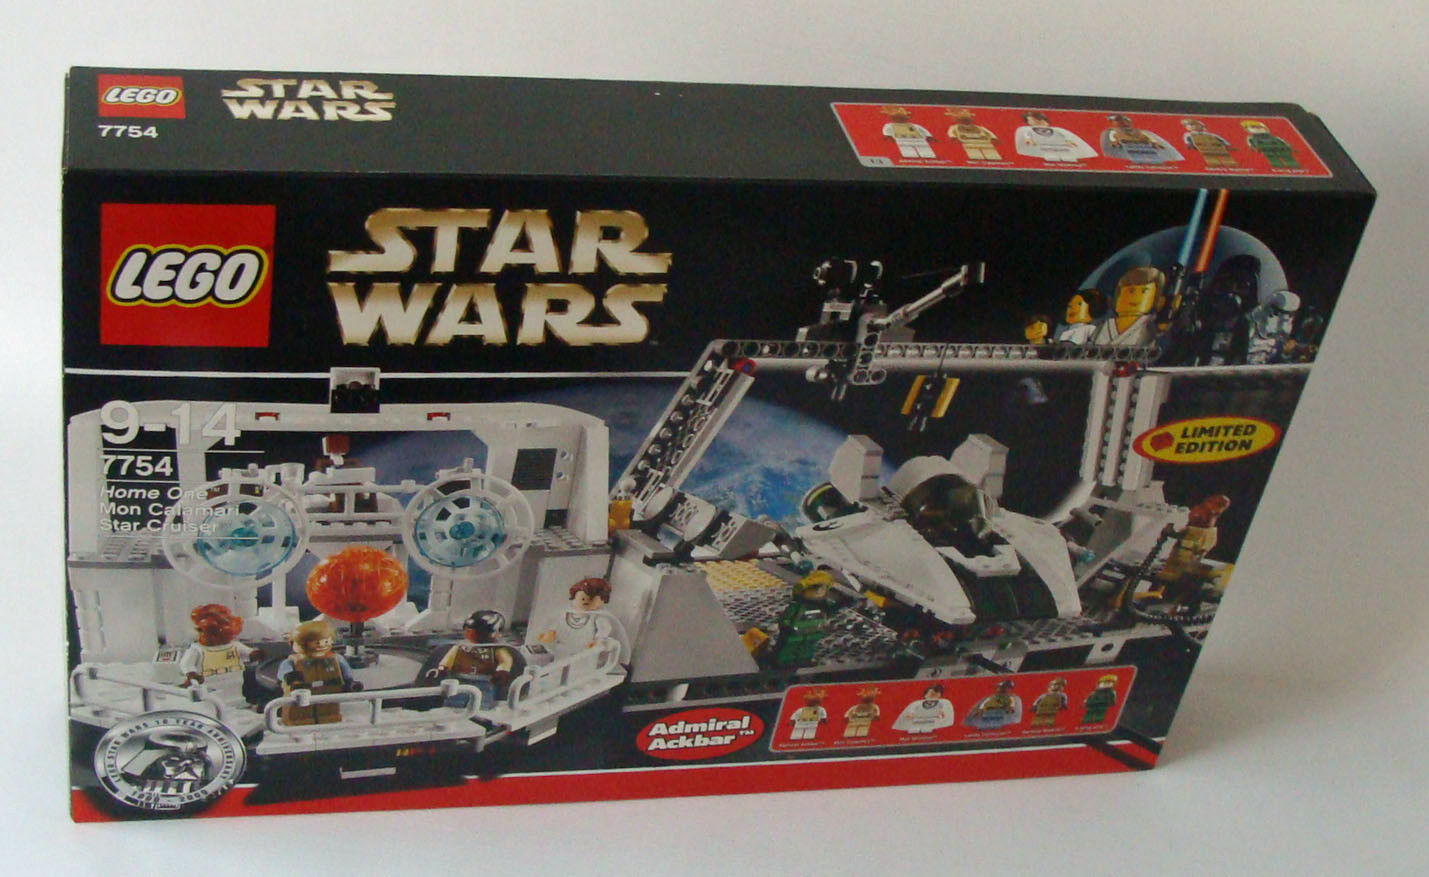 LEGO ® Star Wars 7754 Home One Mon CALAMARI STAR CRUISER 9-14 anni 789 T. - NUOVO